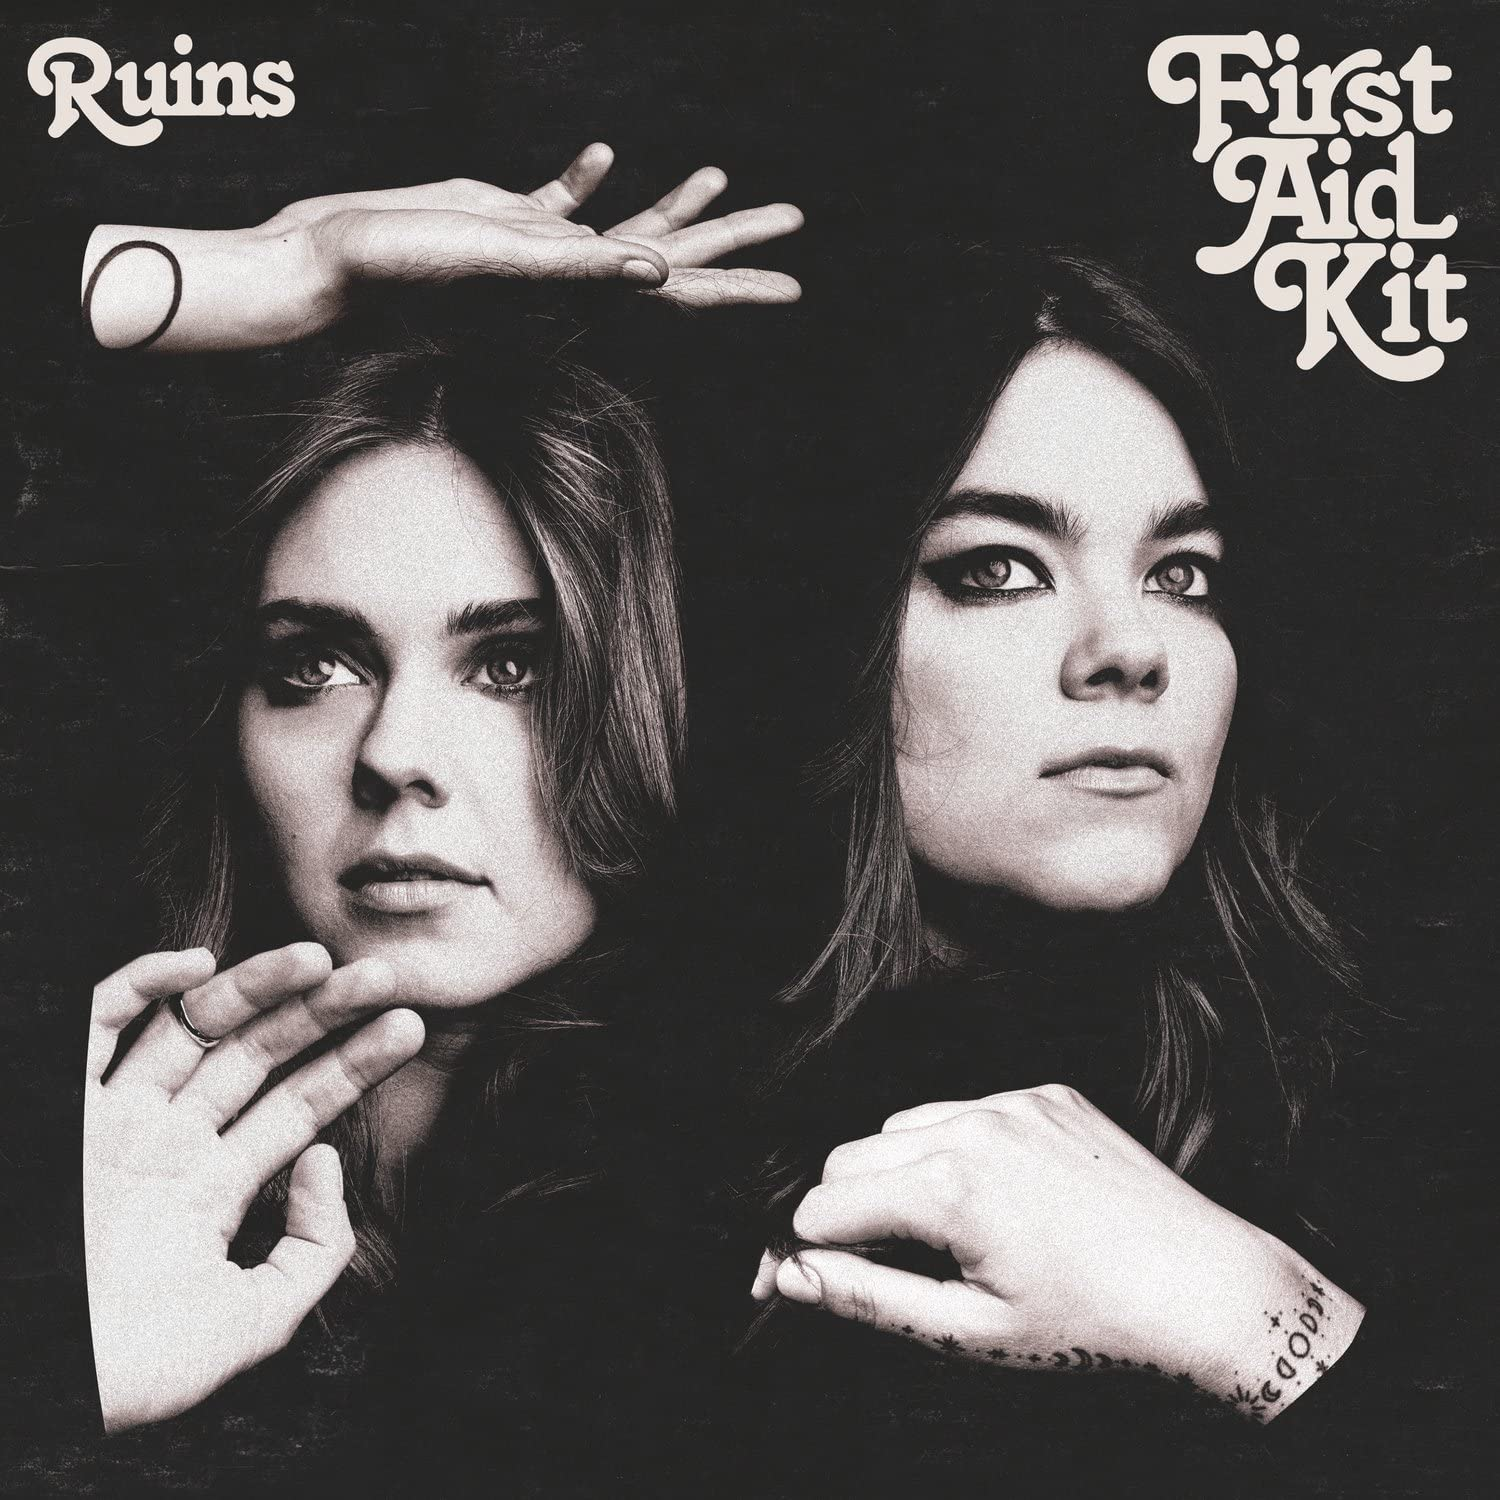 First Aid Kit - Ruins - Double Album Gatefold